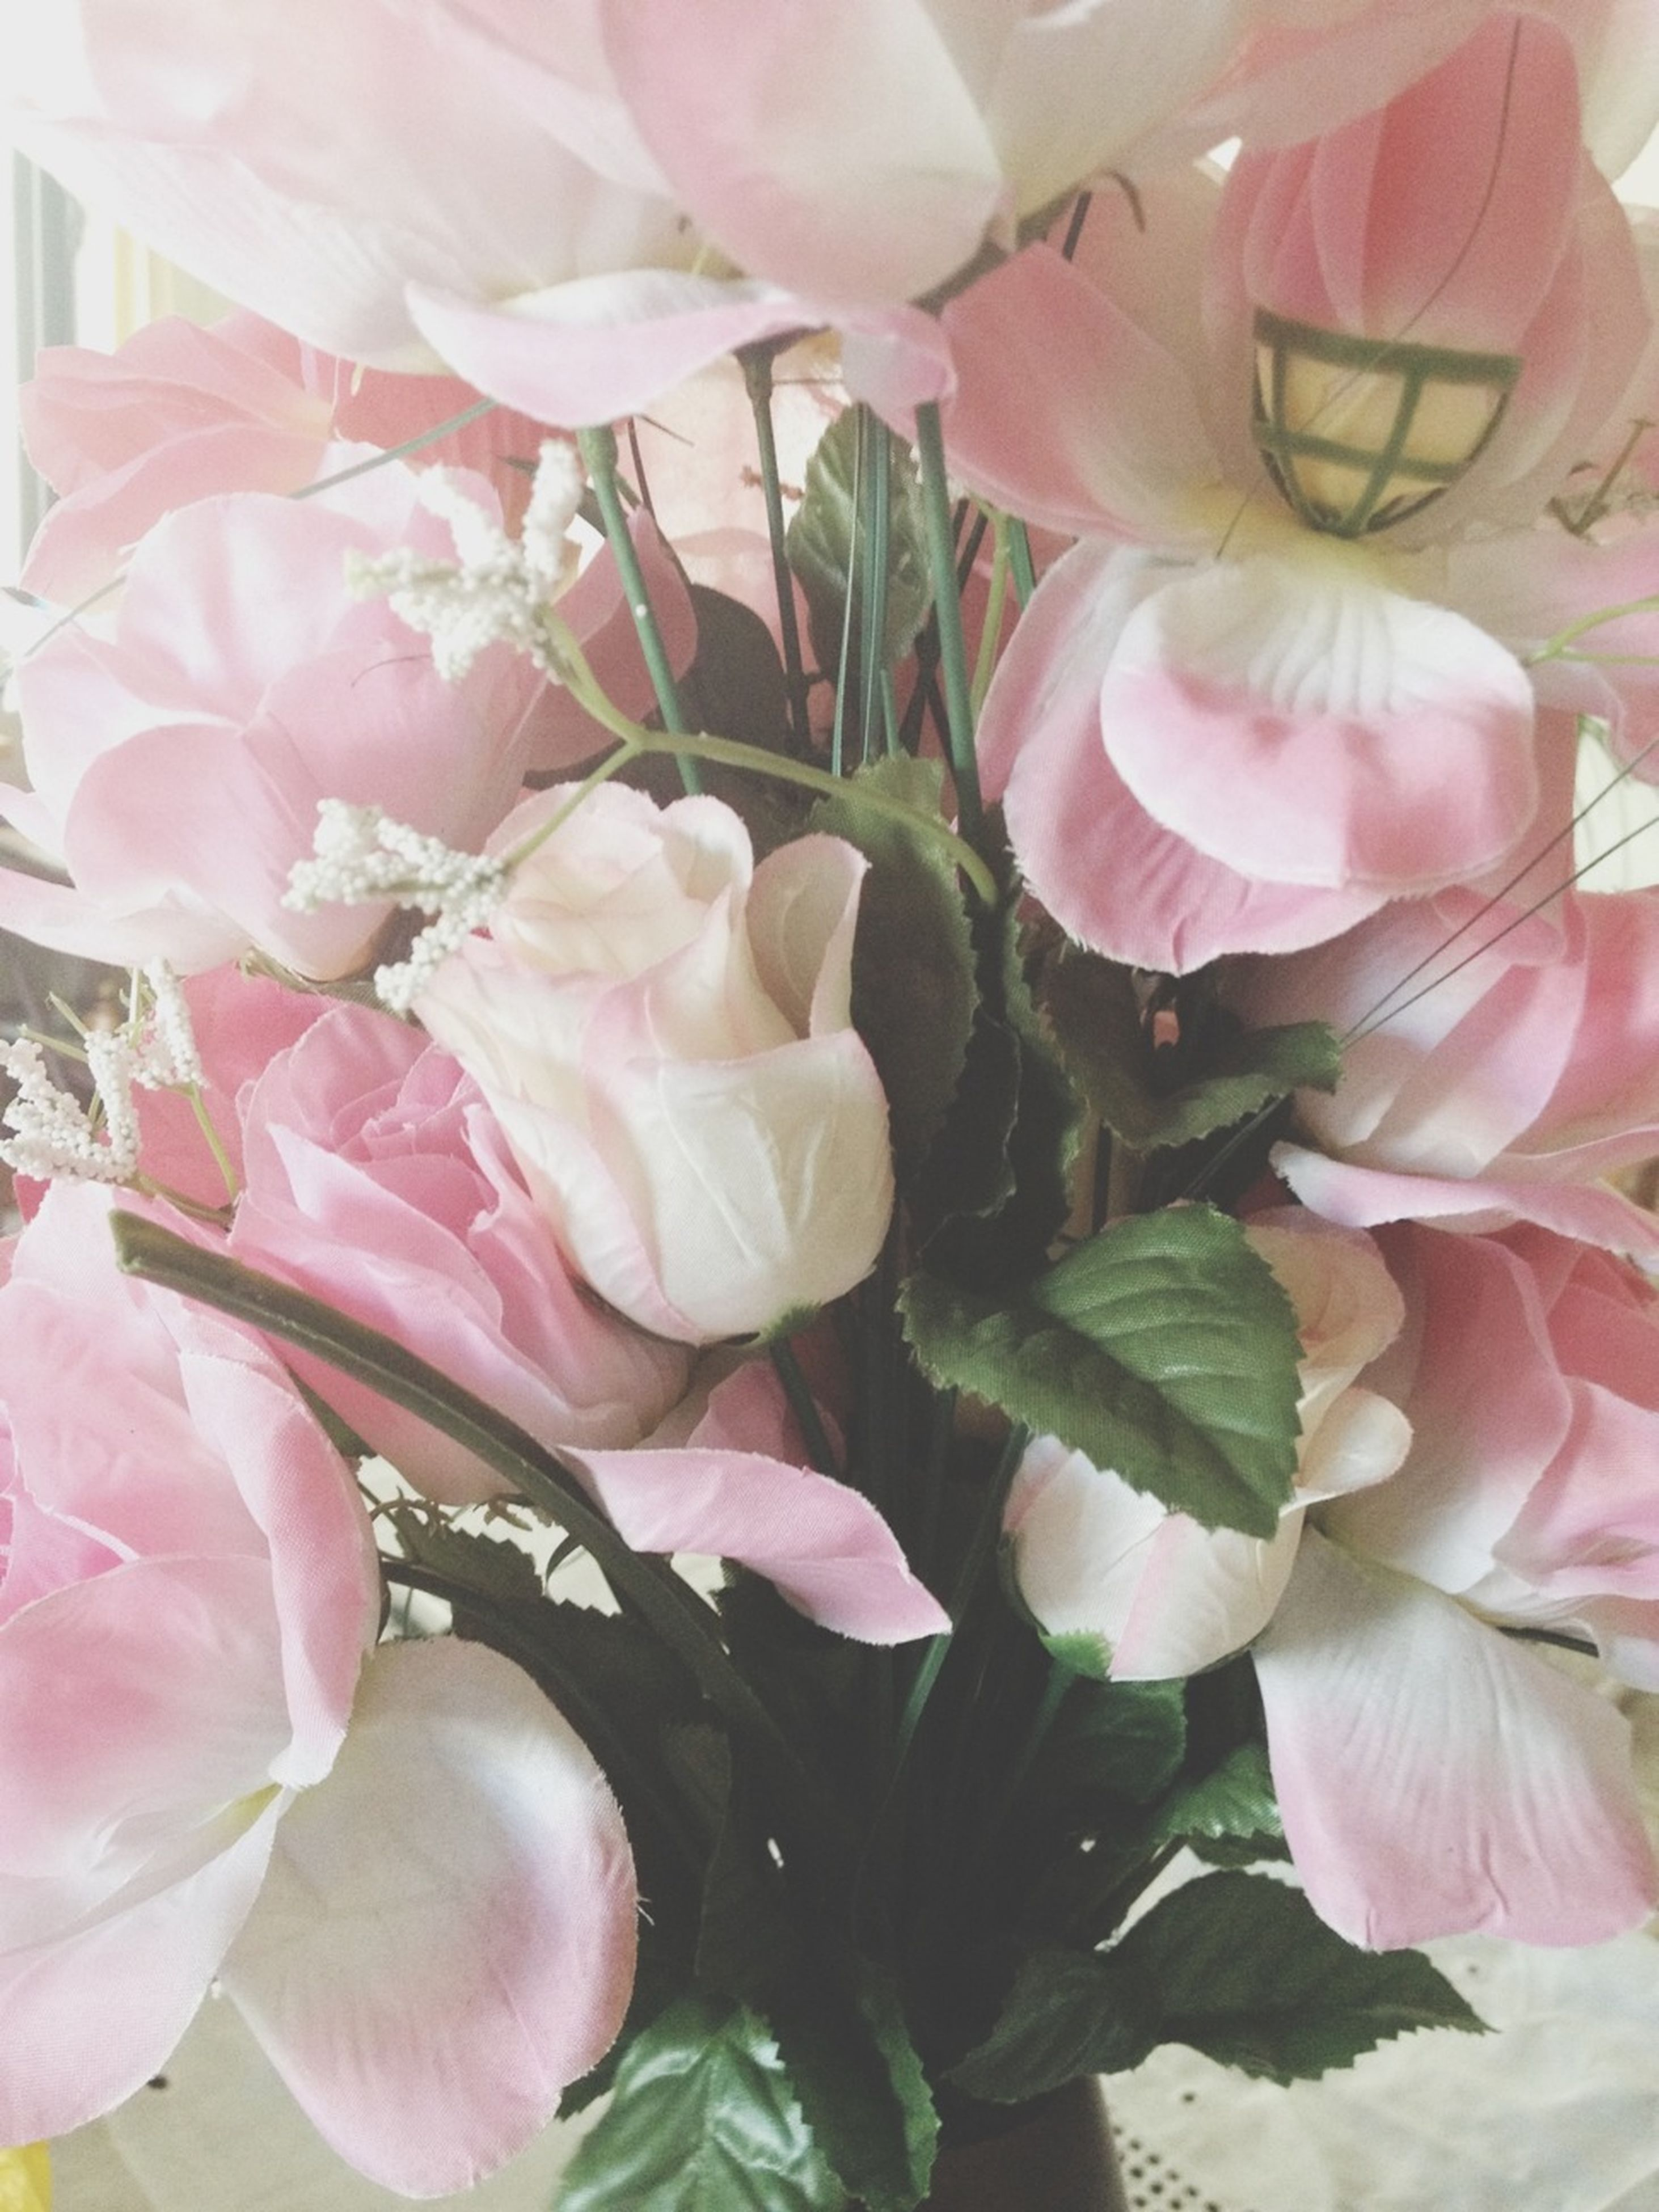 flower, freshness, petal, fragility, pink color, flower head, growth, beauty in nature, close-up, nature, plant, blooming, pink, in bloom, rose - flower, leaf, blossom, botany, springtime, day